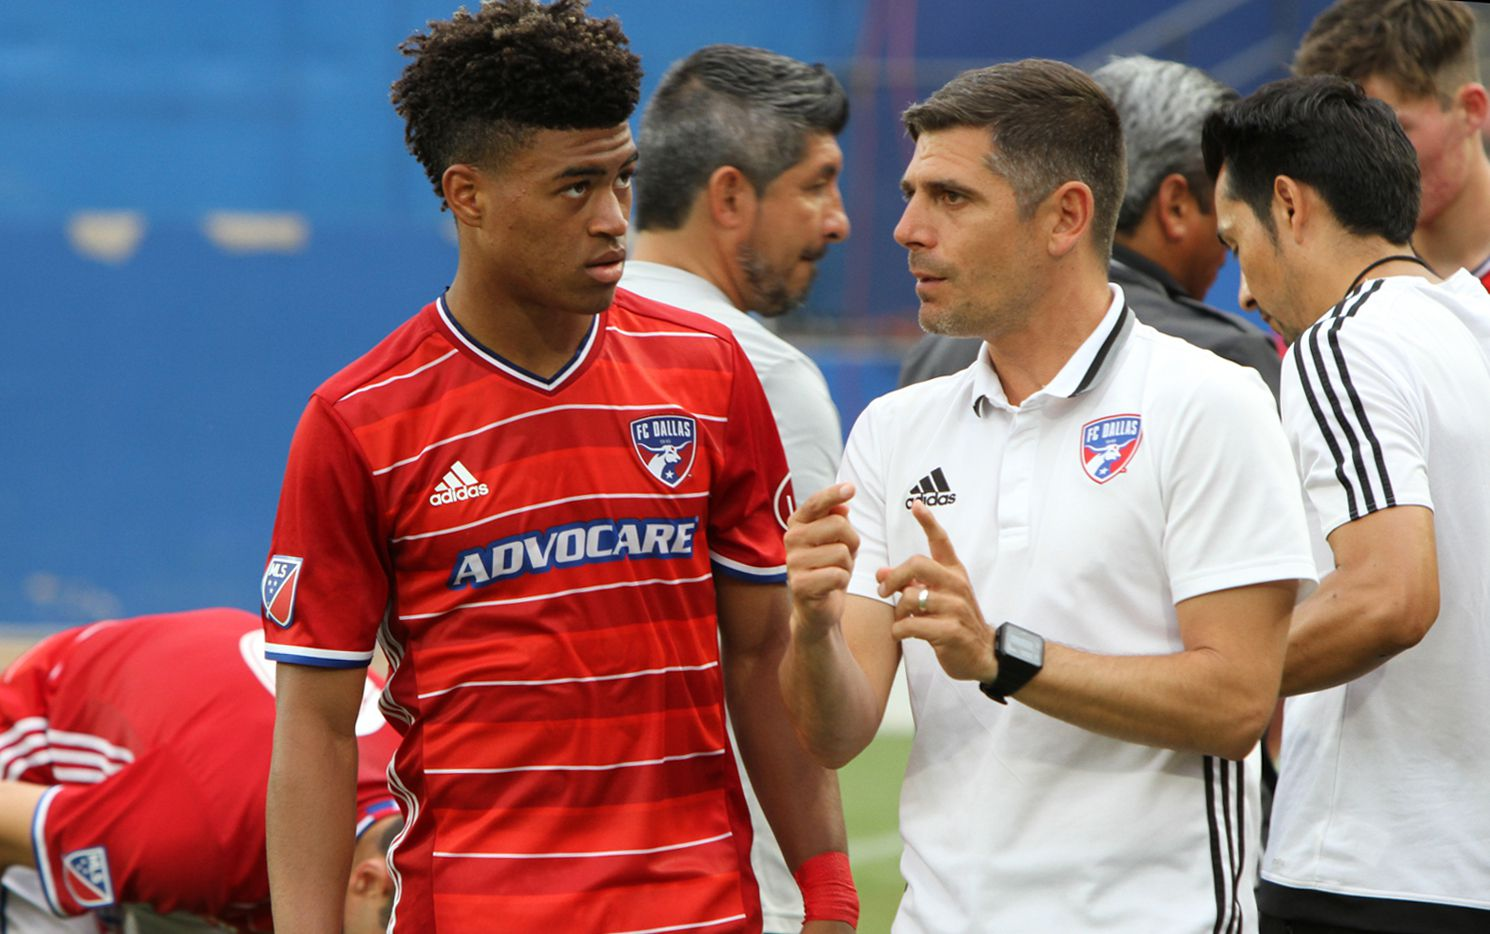 Luchi Gonzalez (right) gives instructions during the 2018 Dallas Cup.